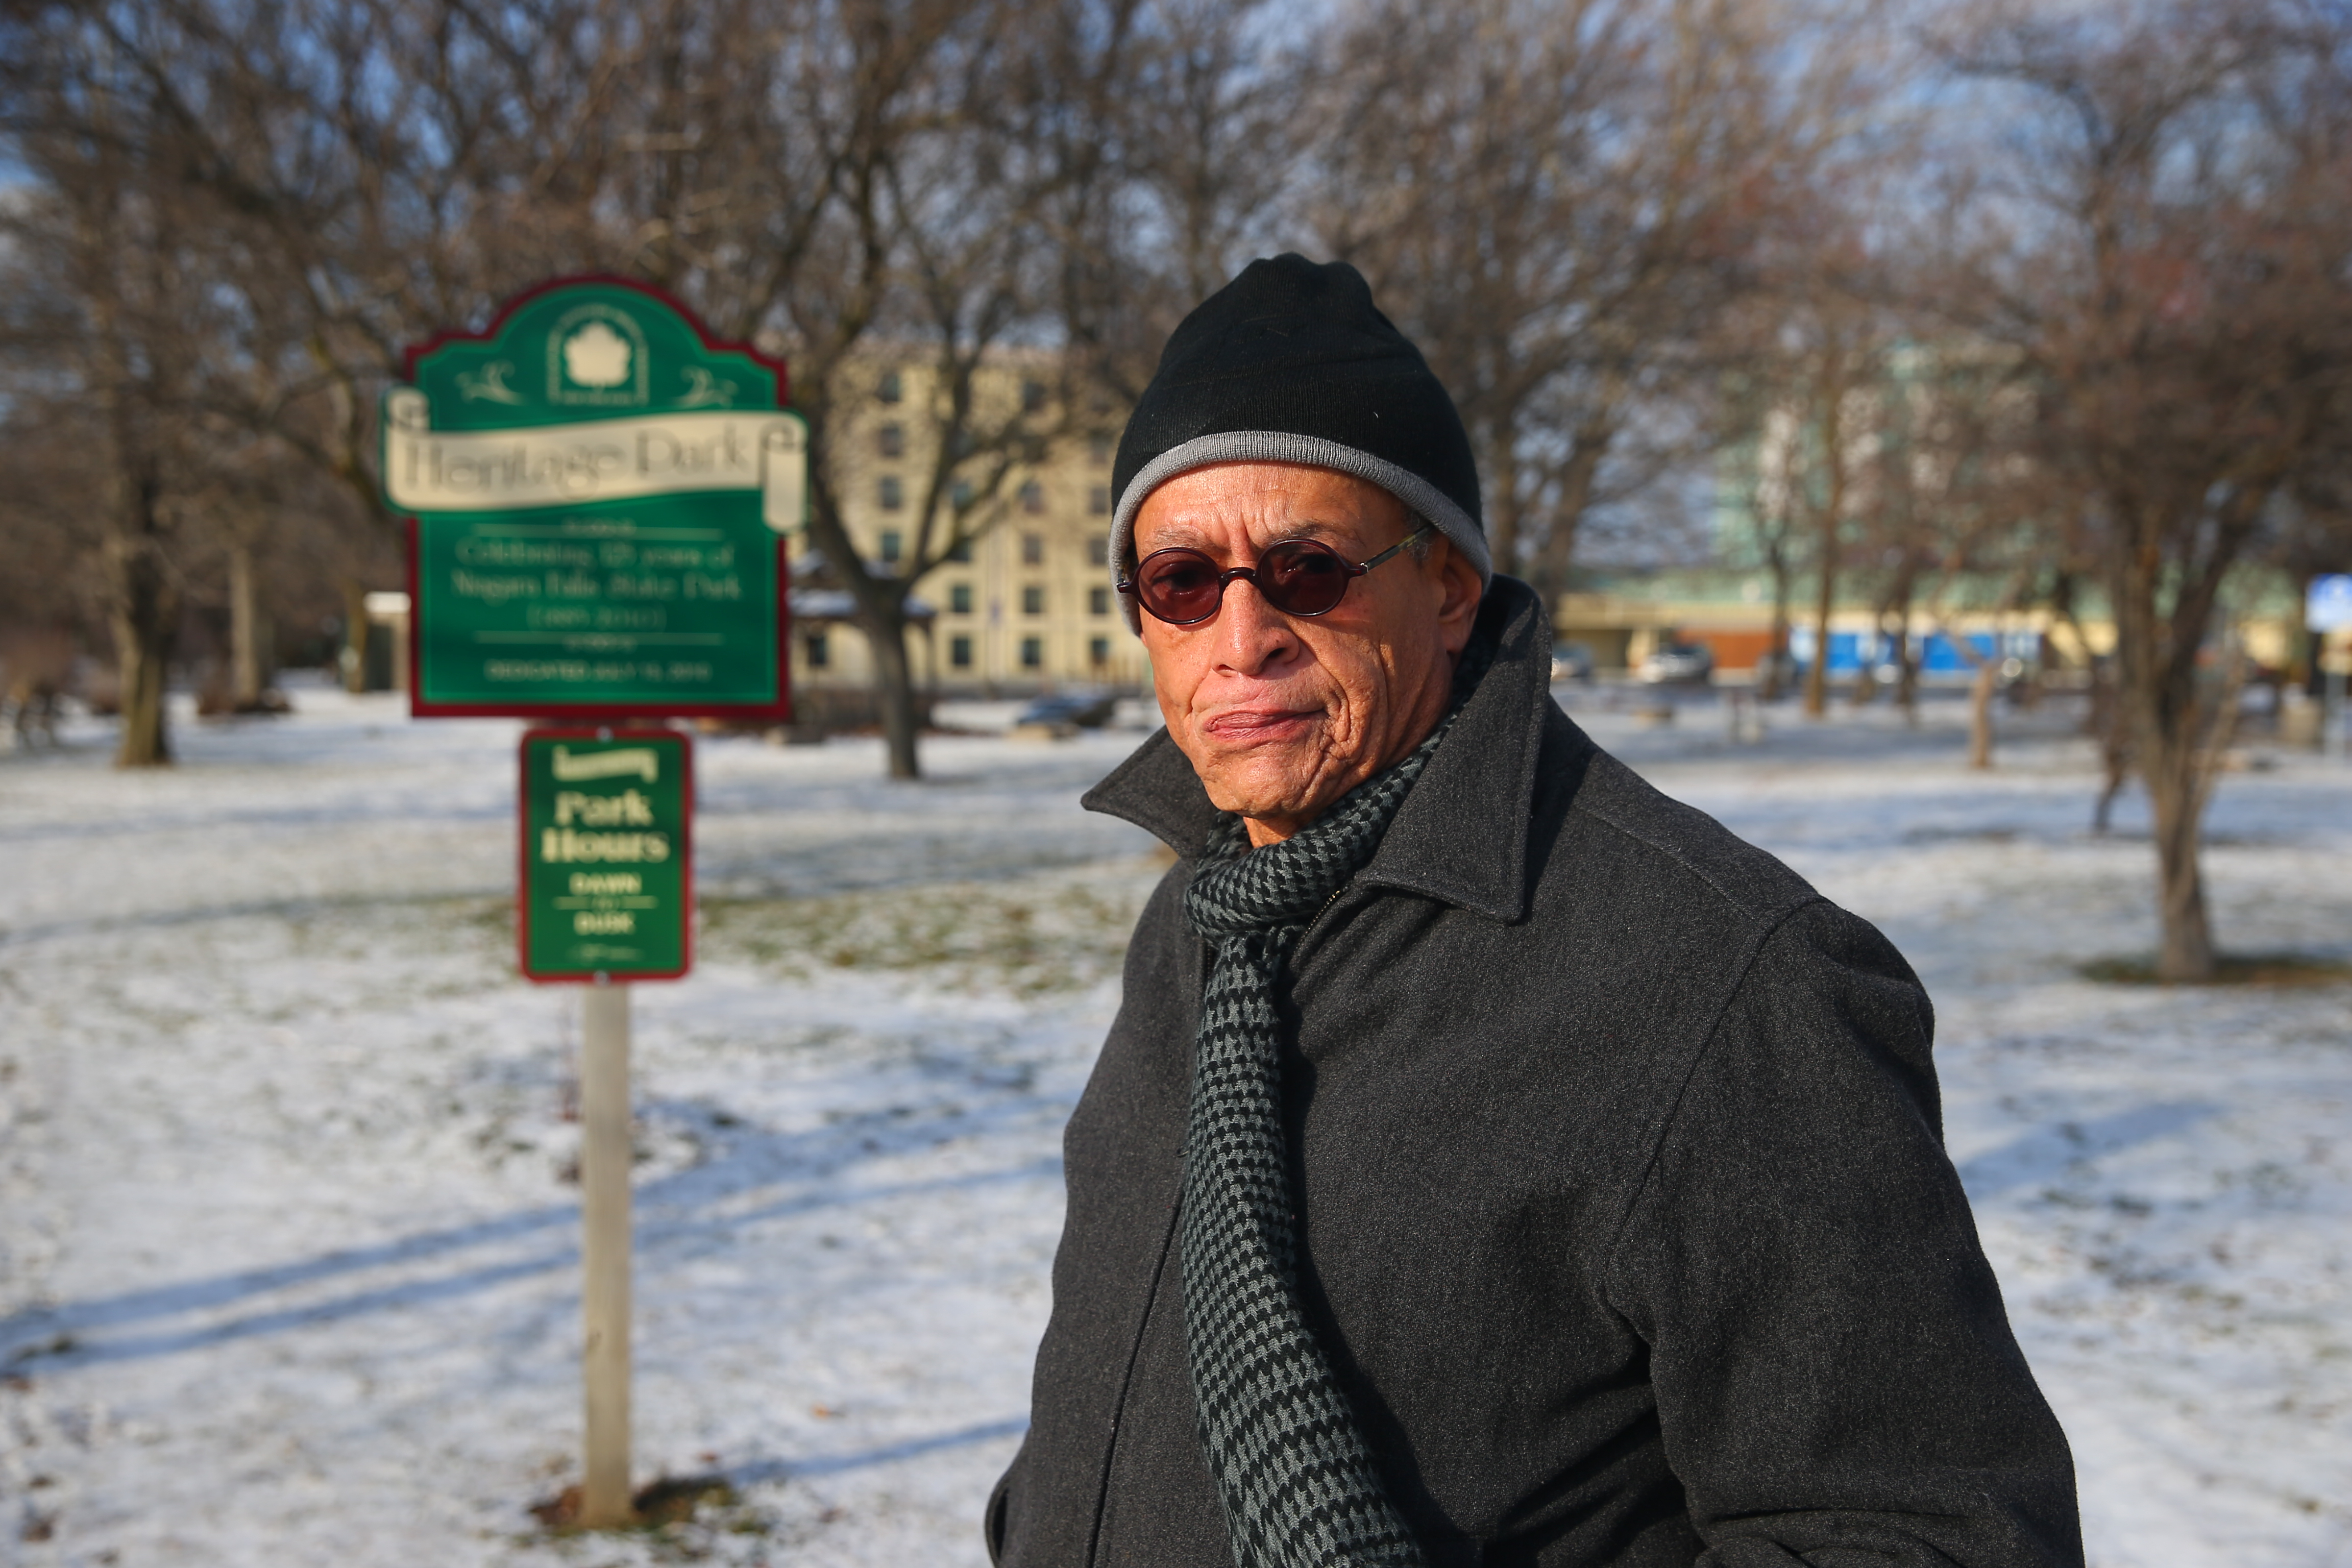 William Bradberry stands in Heritage Park at the site where the former Cataract House Hotel stood, on Monday,  Jan. 9, 2017 in Niagara Falls, N.Y.  (John Hickey/Buffalo News)